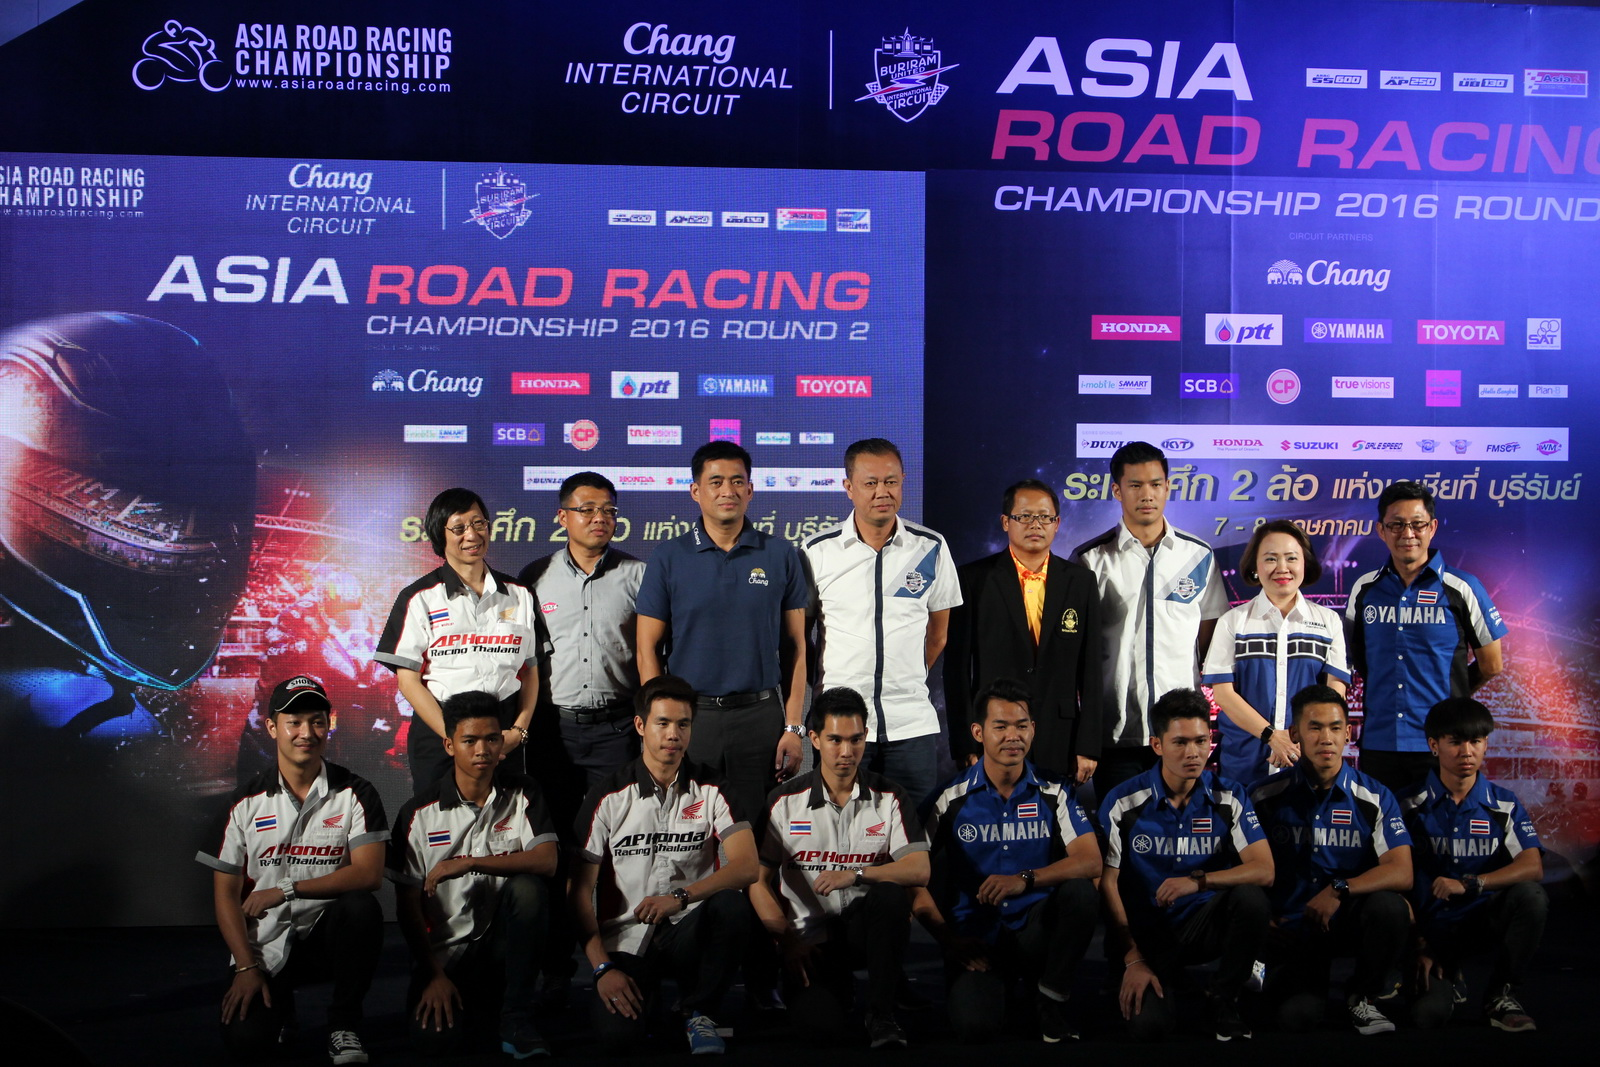 asia_road_race_press_12